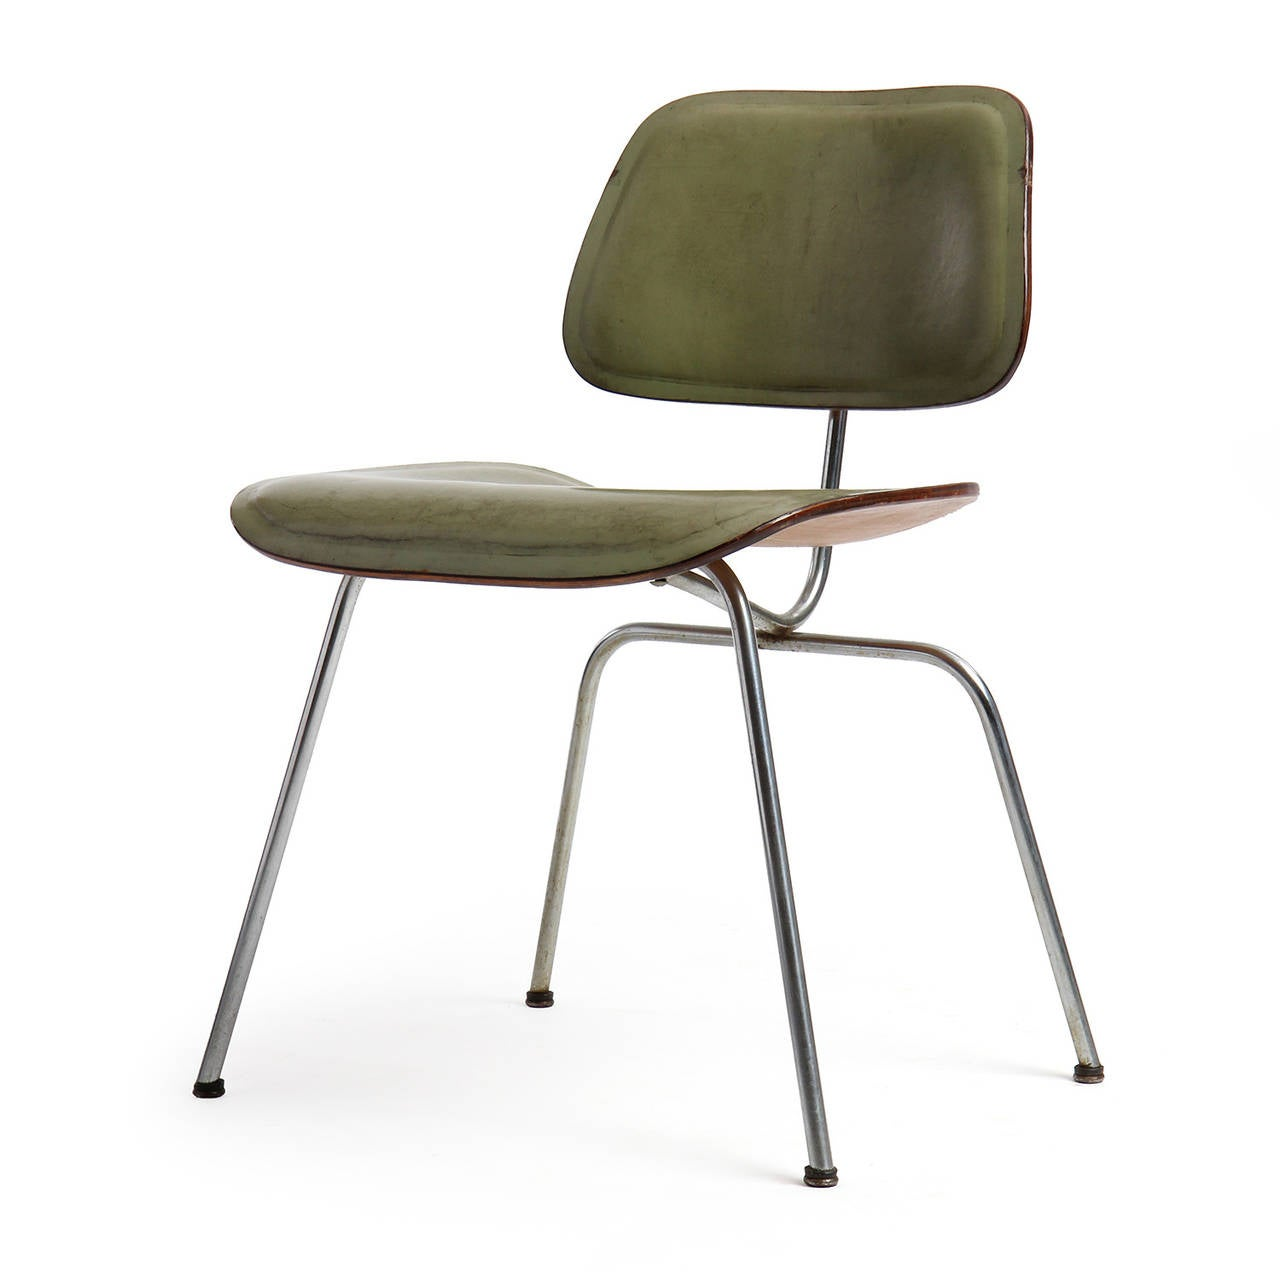 eames leather chair dining ergonomic sit stand dcm by charles and ray for sale at 1stdibs